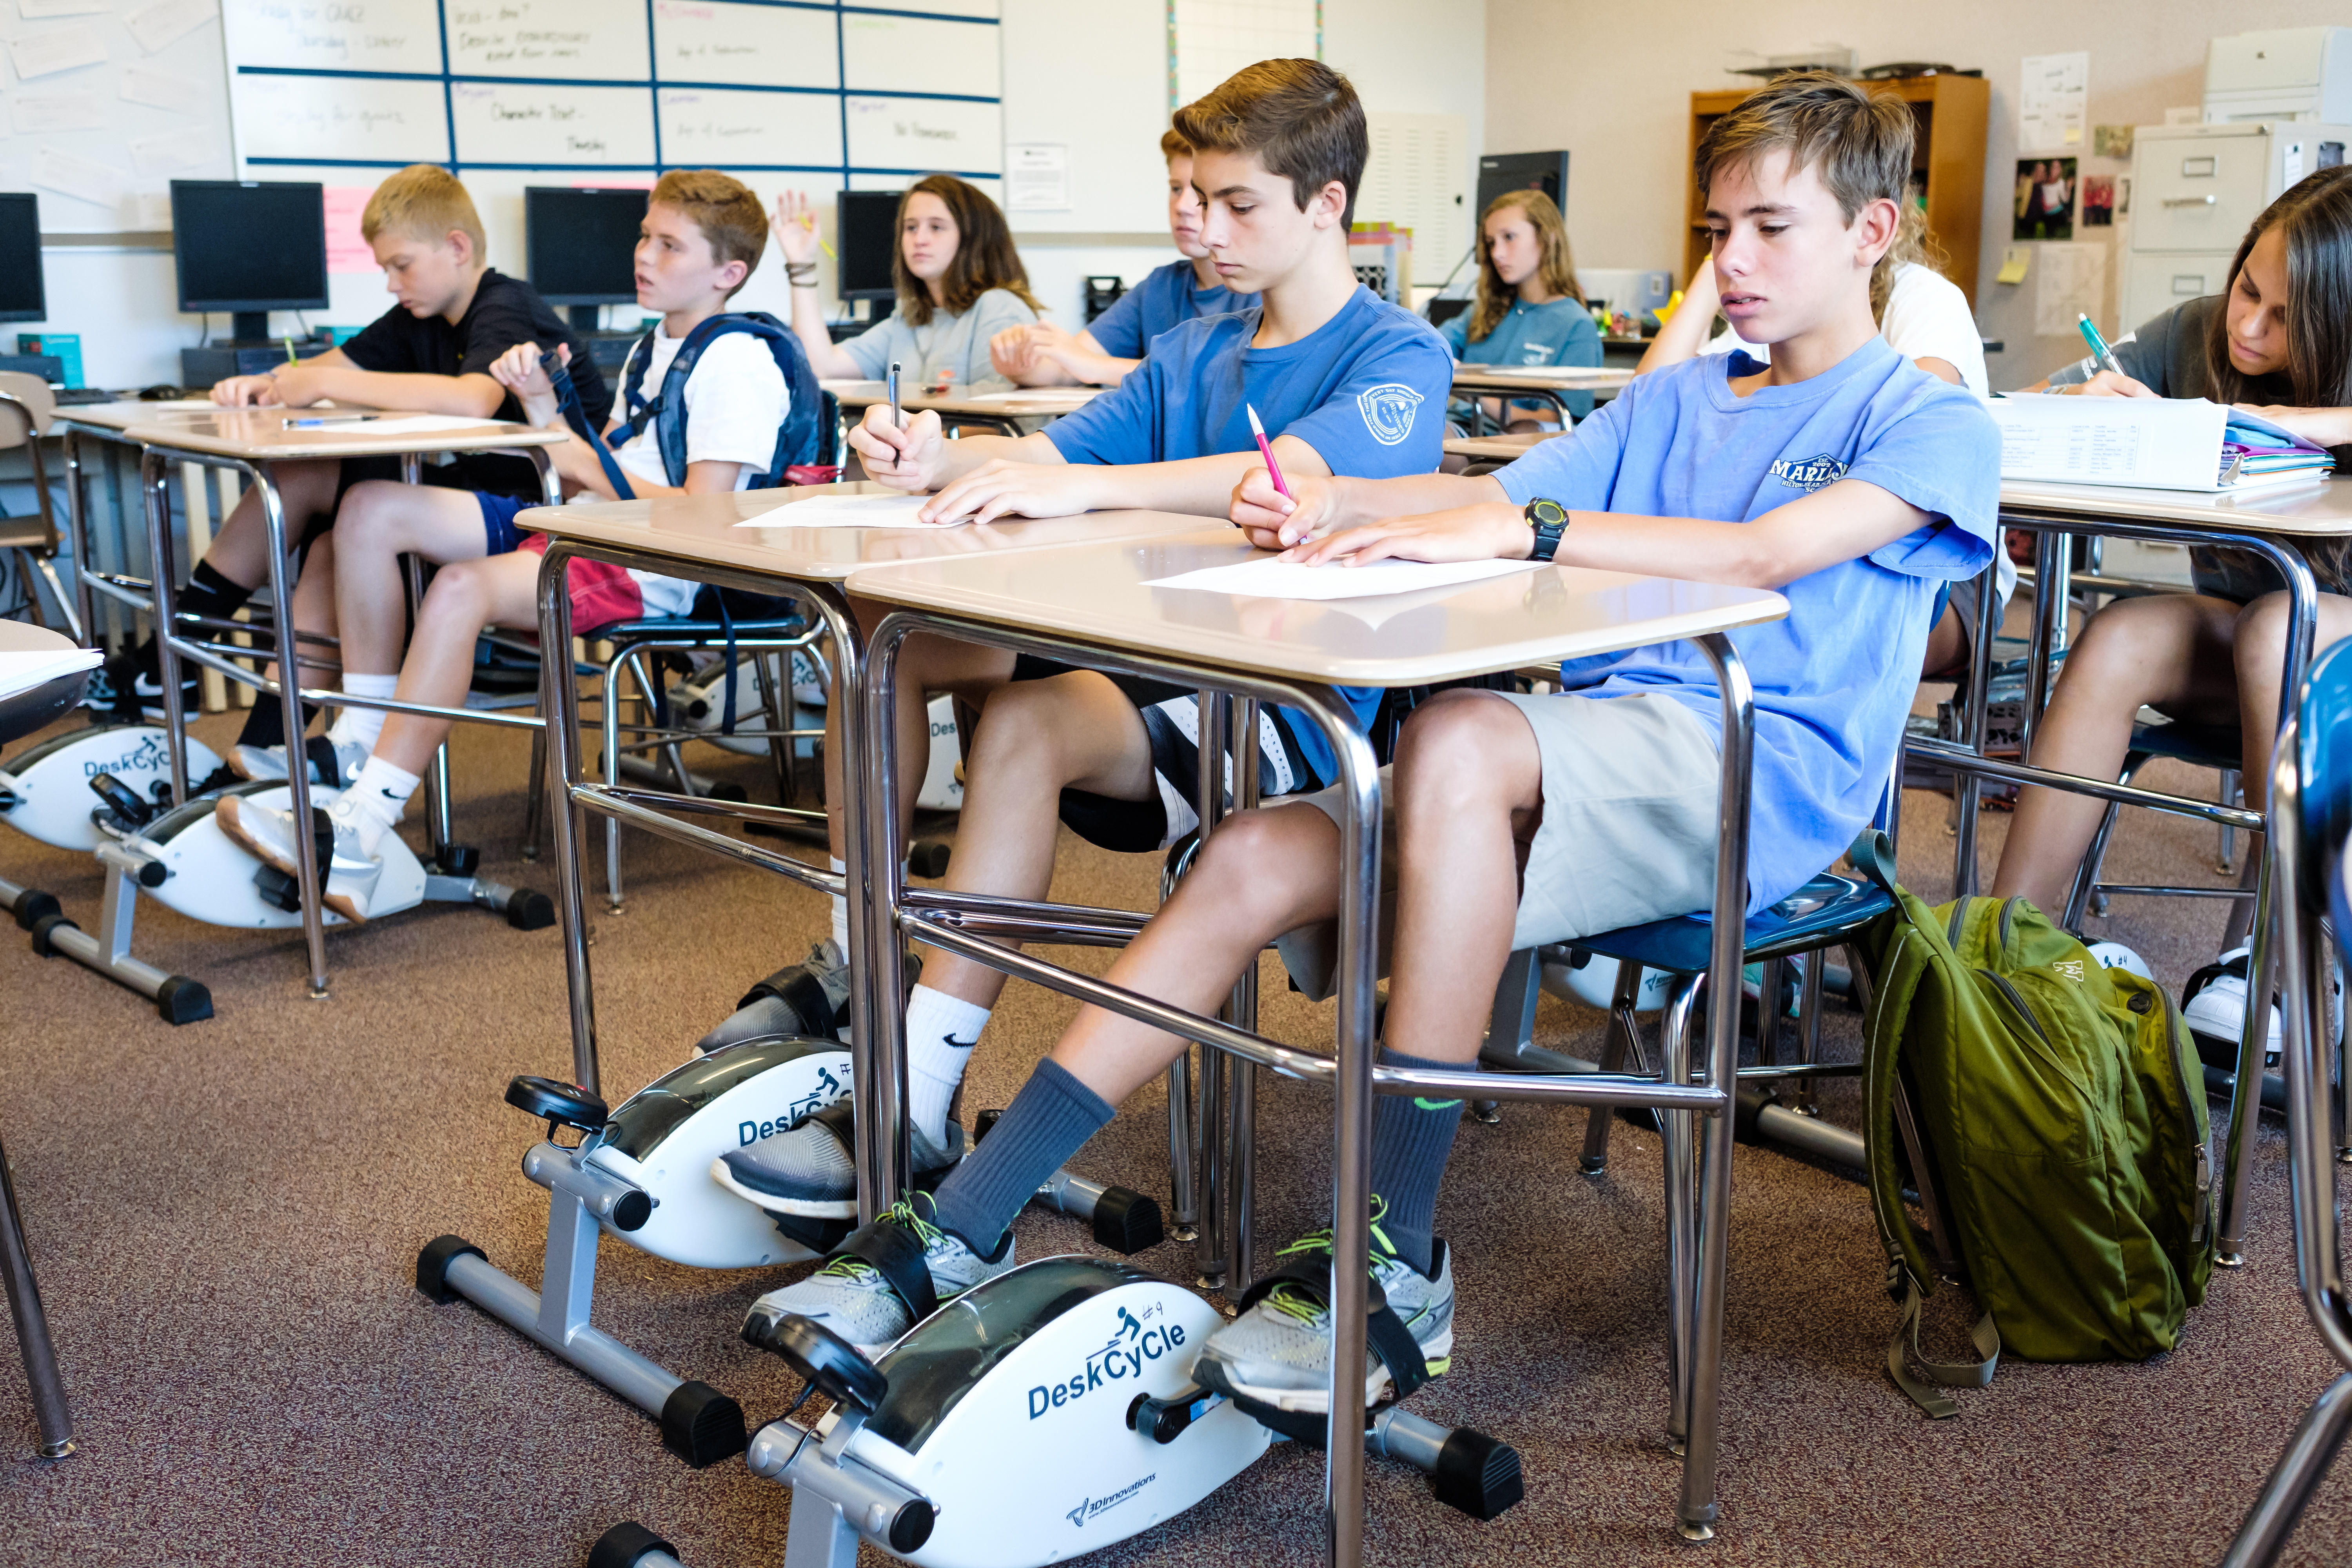 These North Carolina Middle School Students Are Pedaling